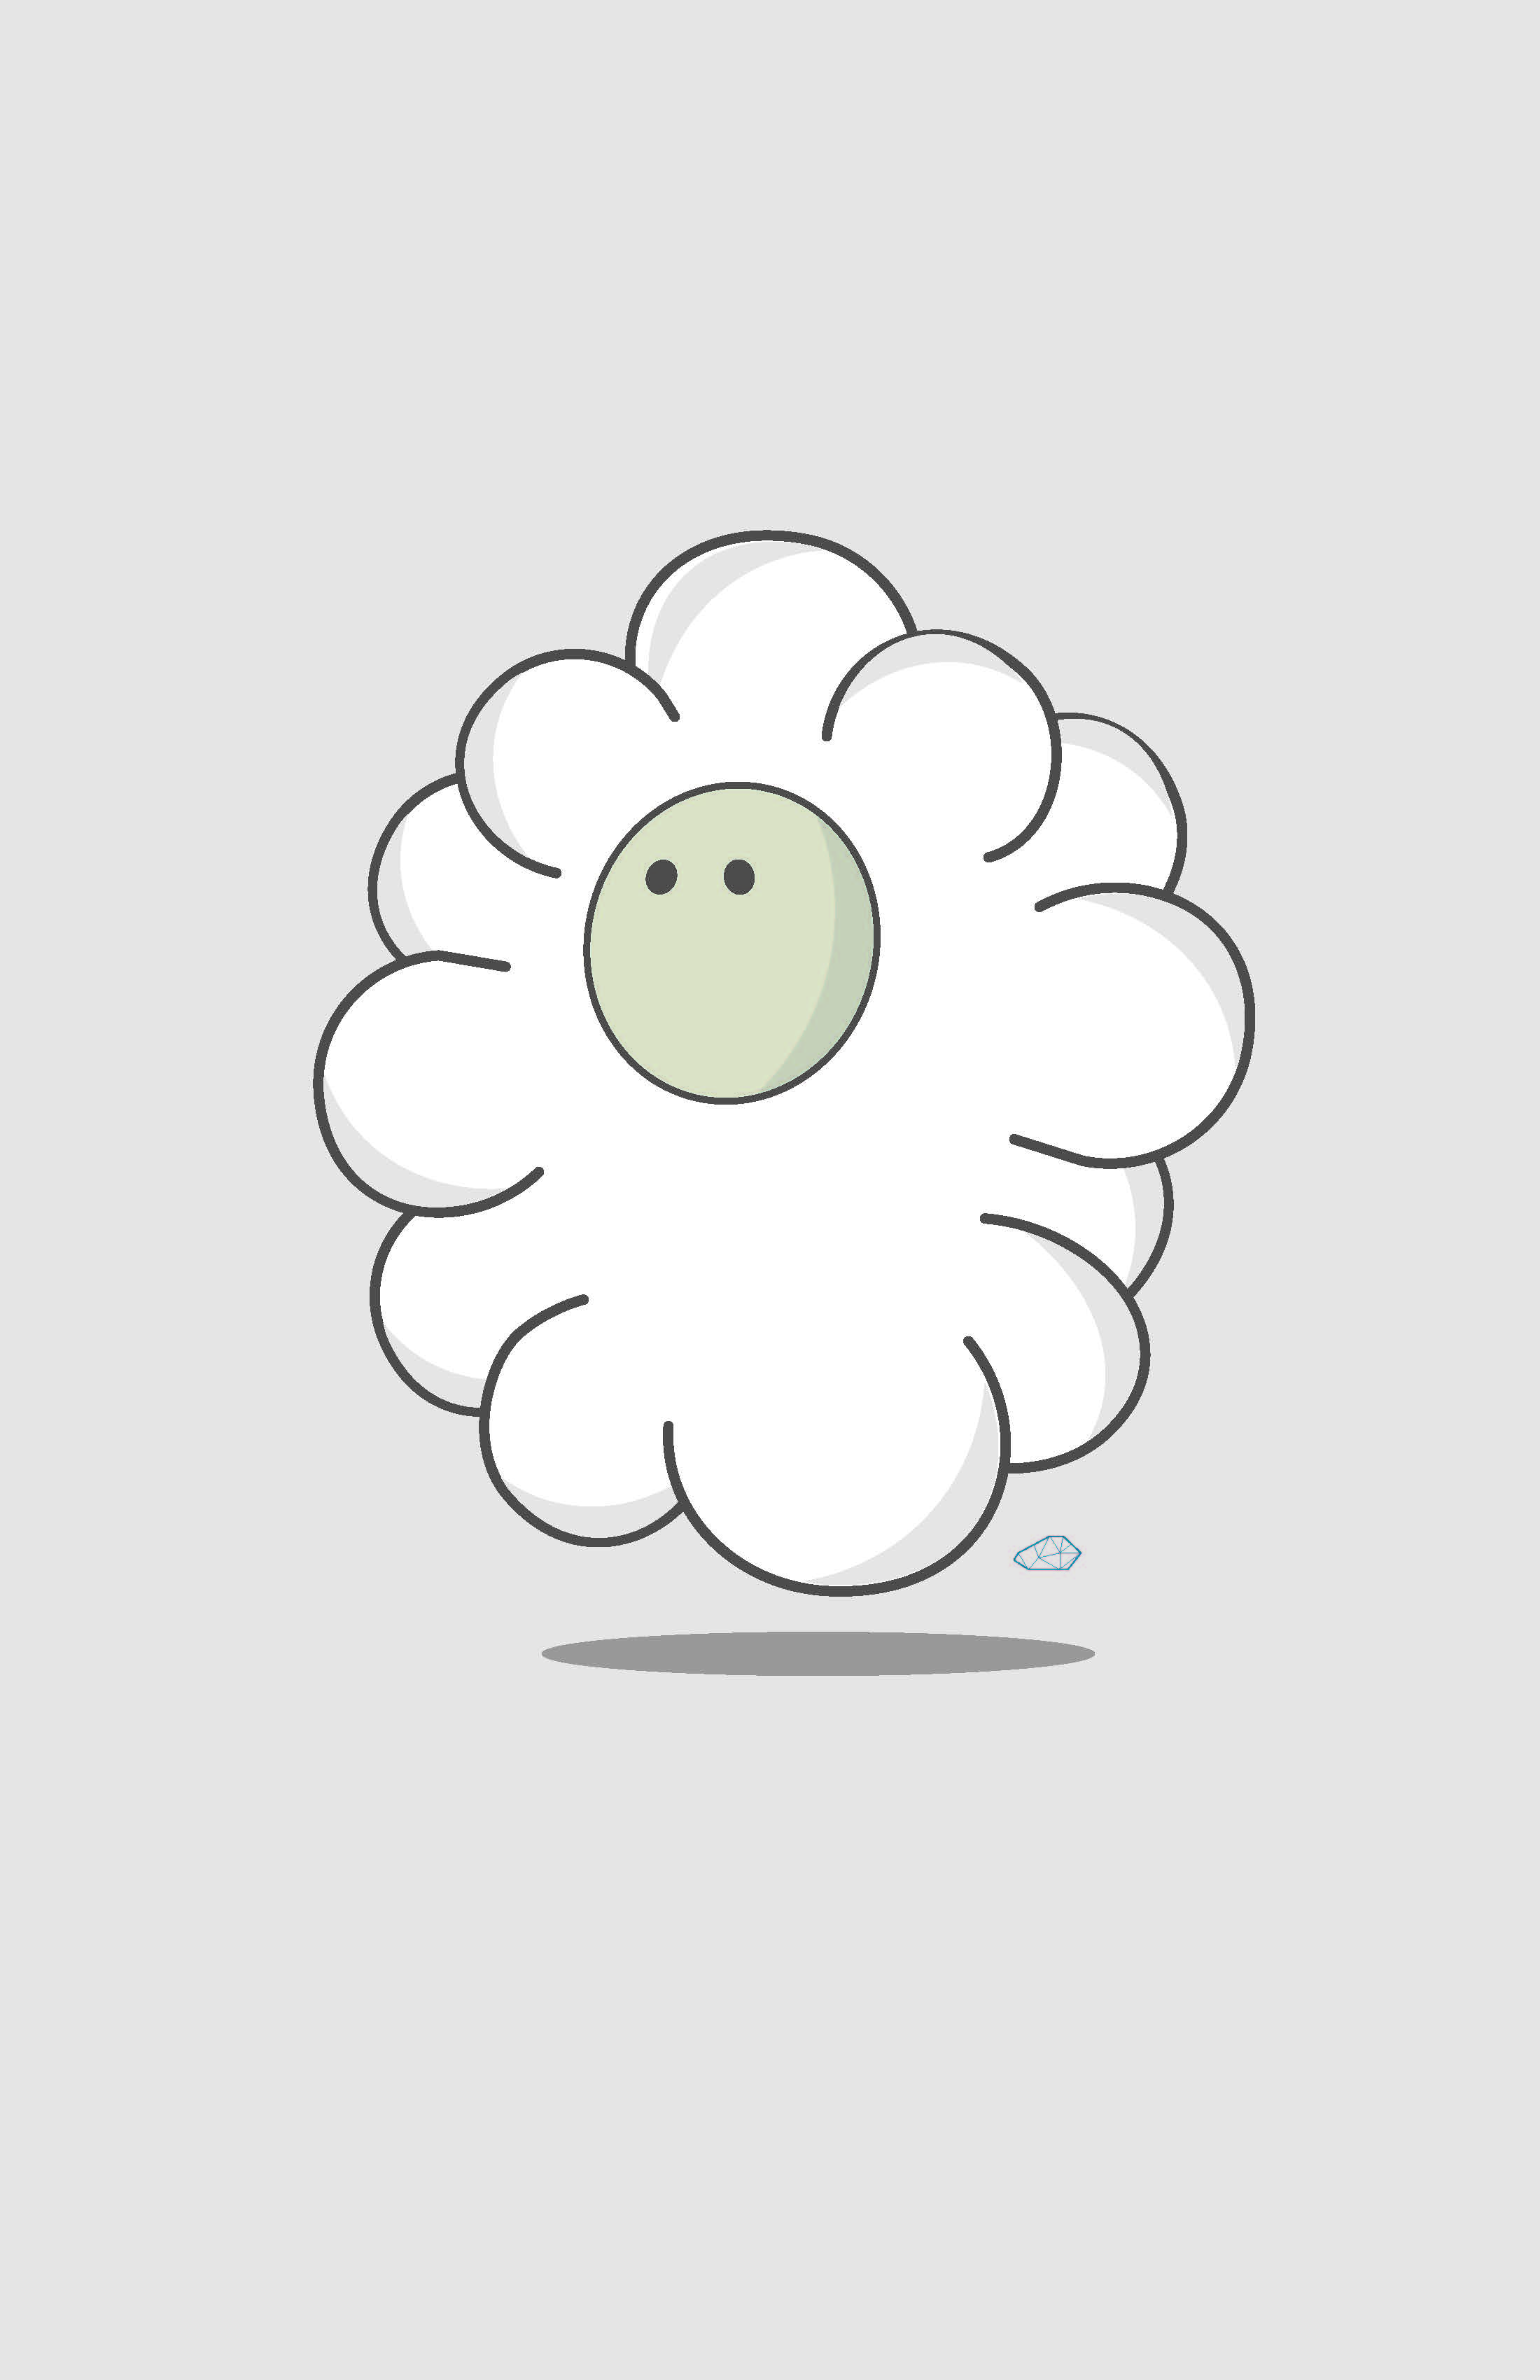 Illustration of cute creature called the minimal